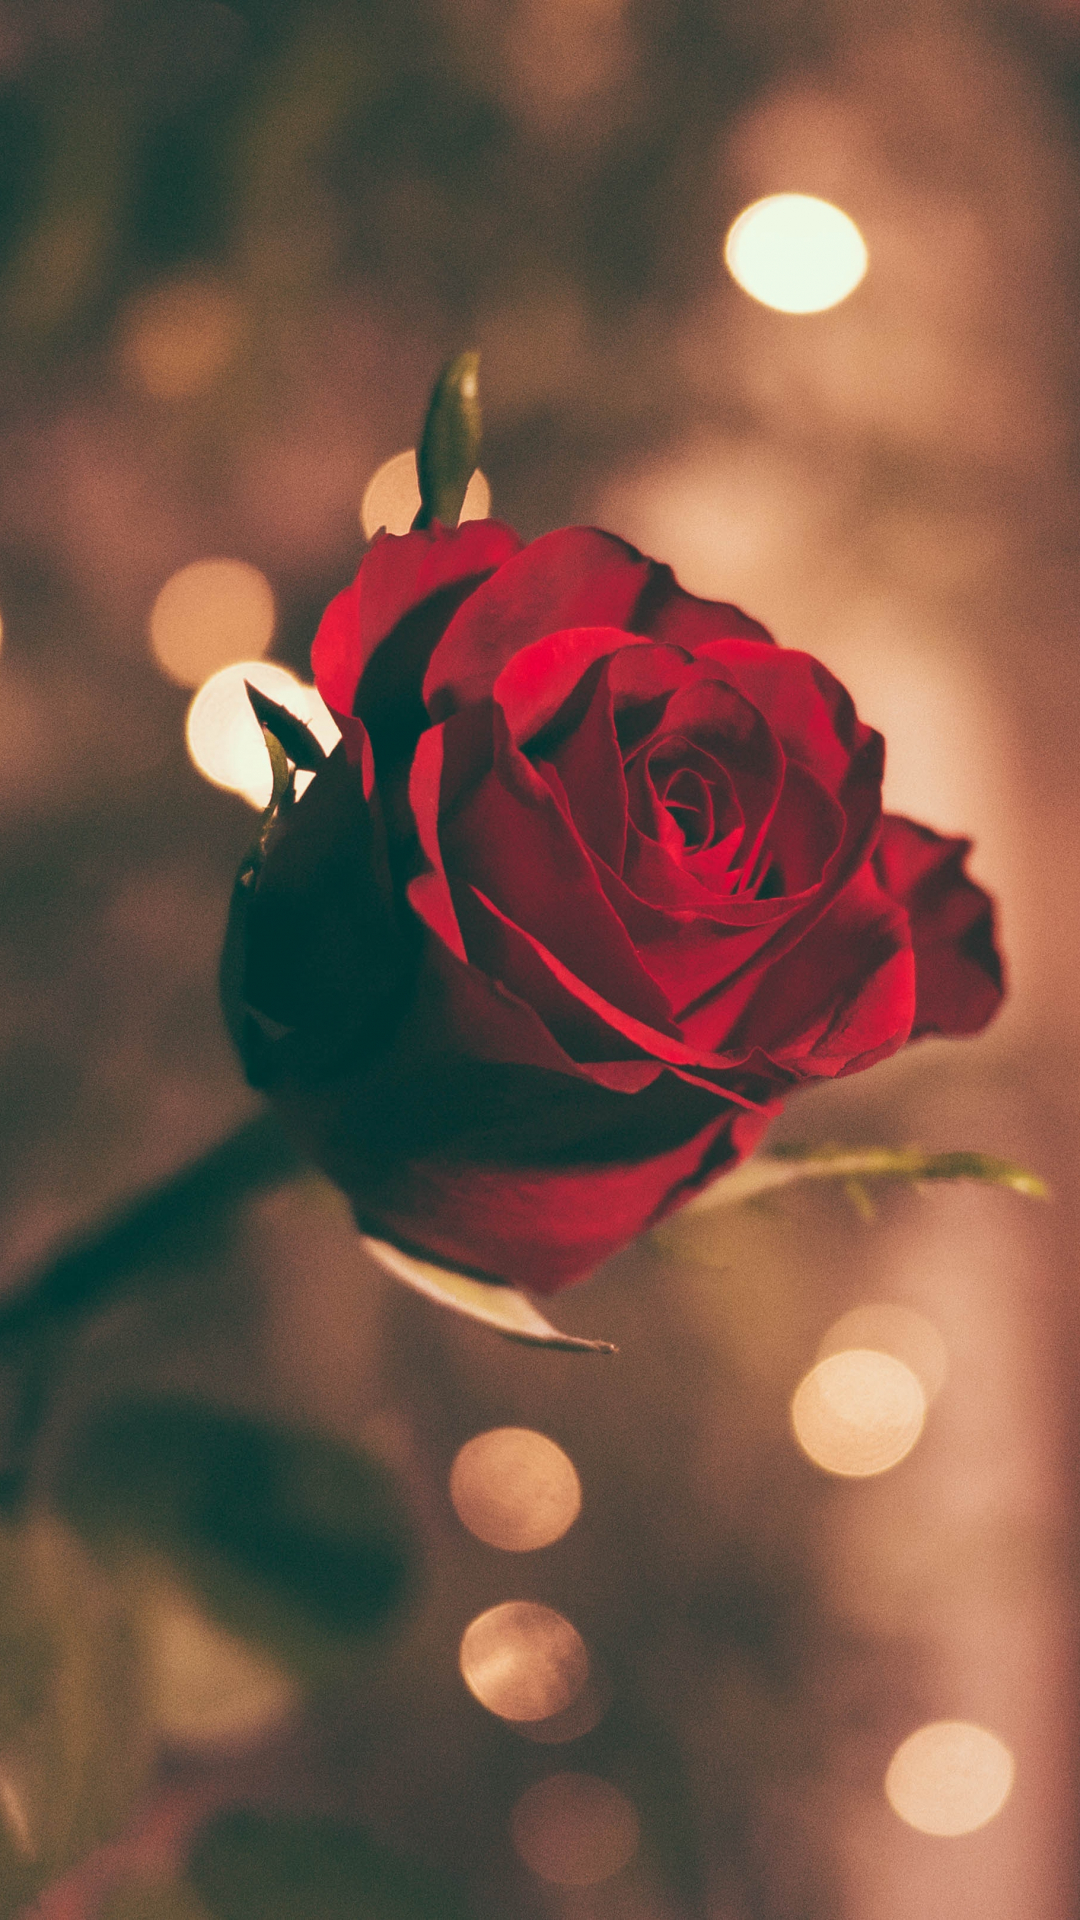 A Rose Iphone Wallpaper Idrop News